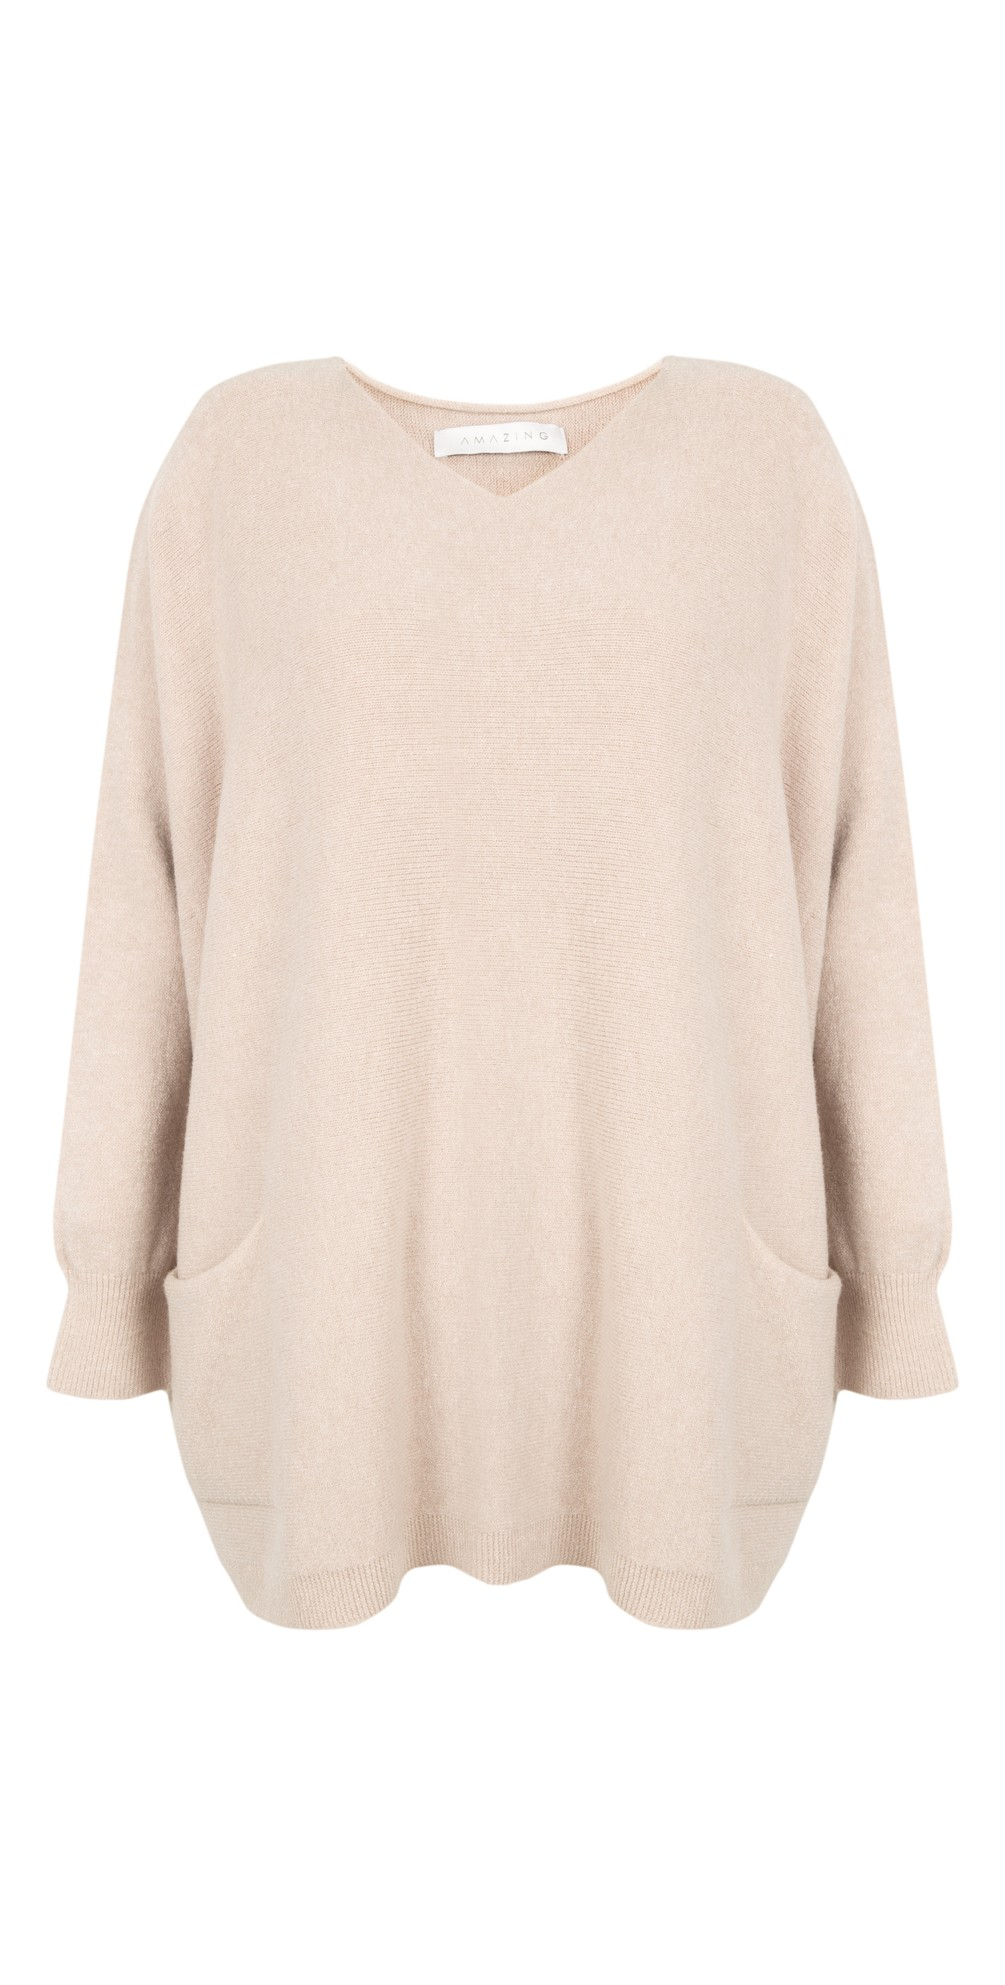 Carys Sweater Ivory - Amazing Woman